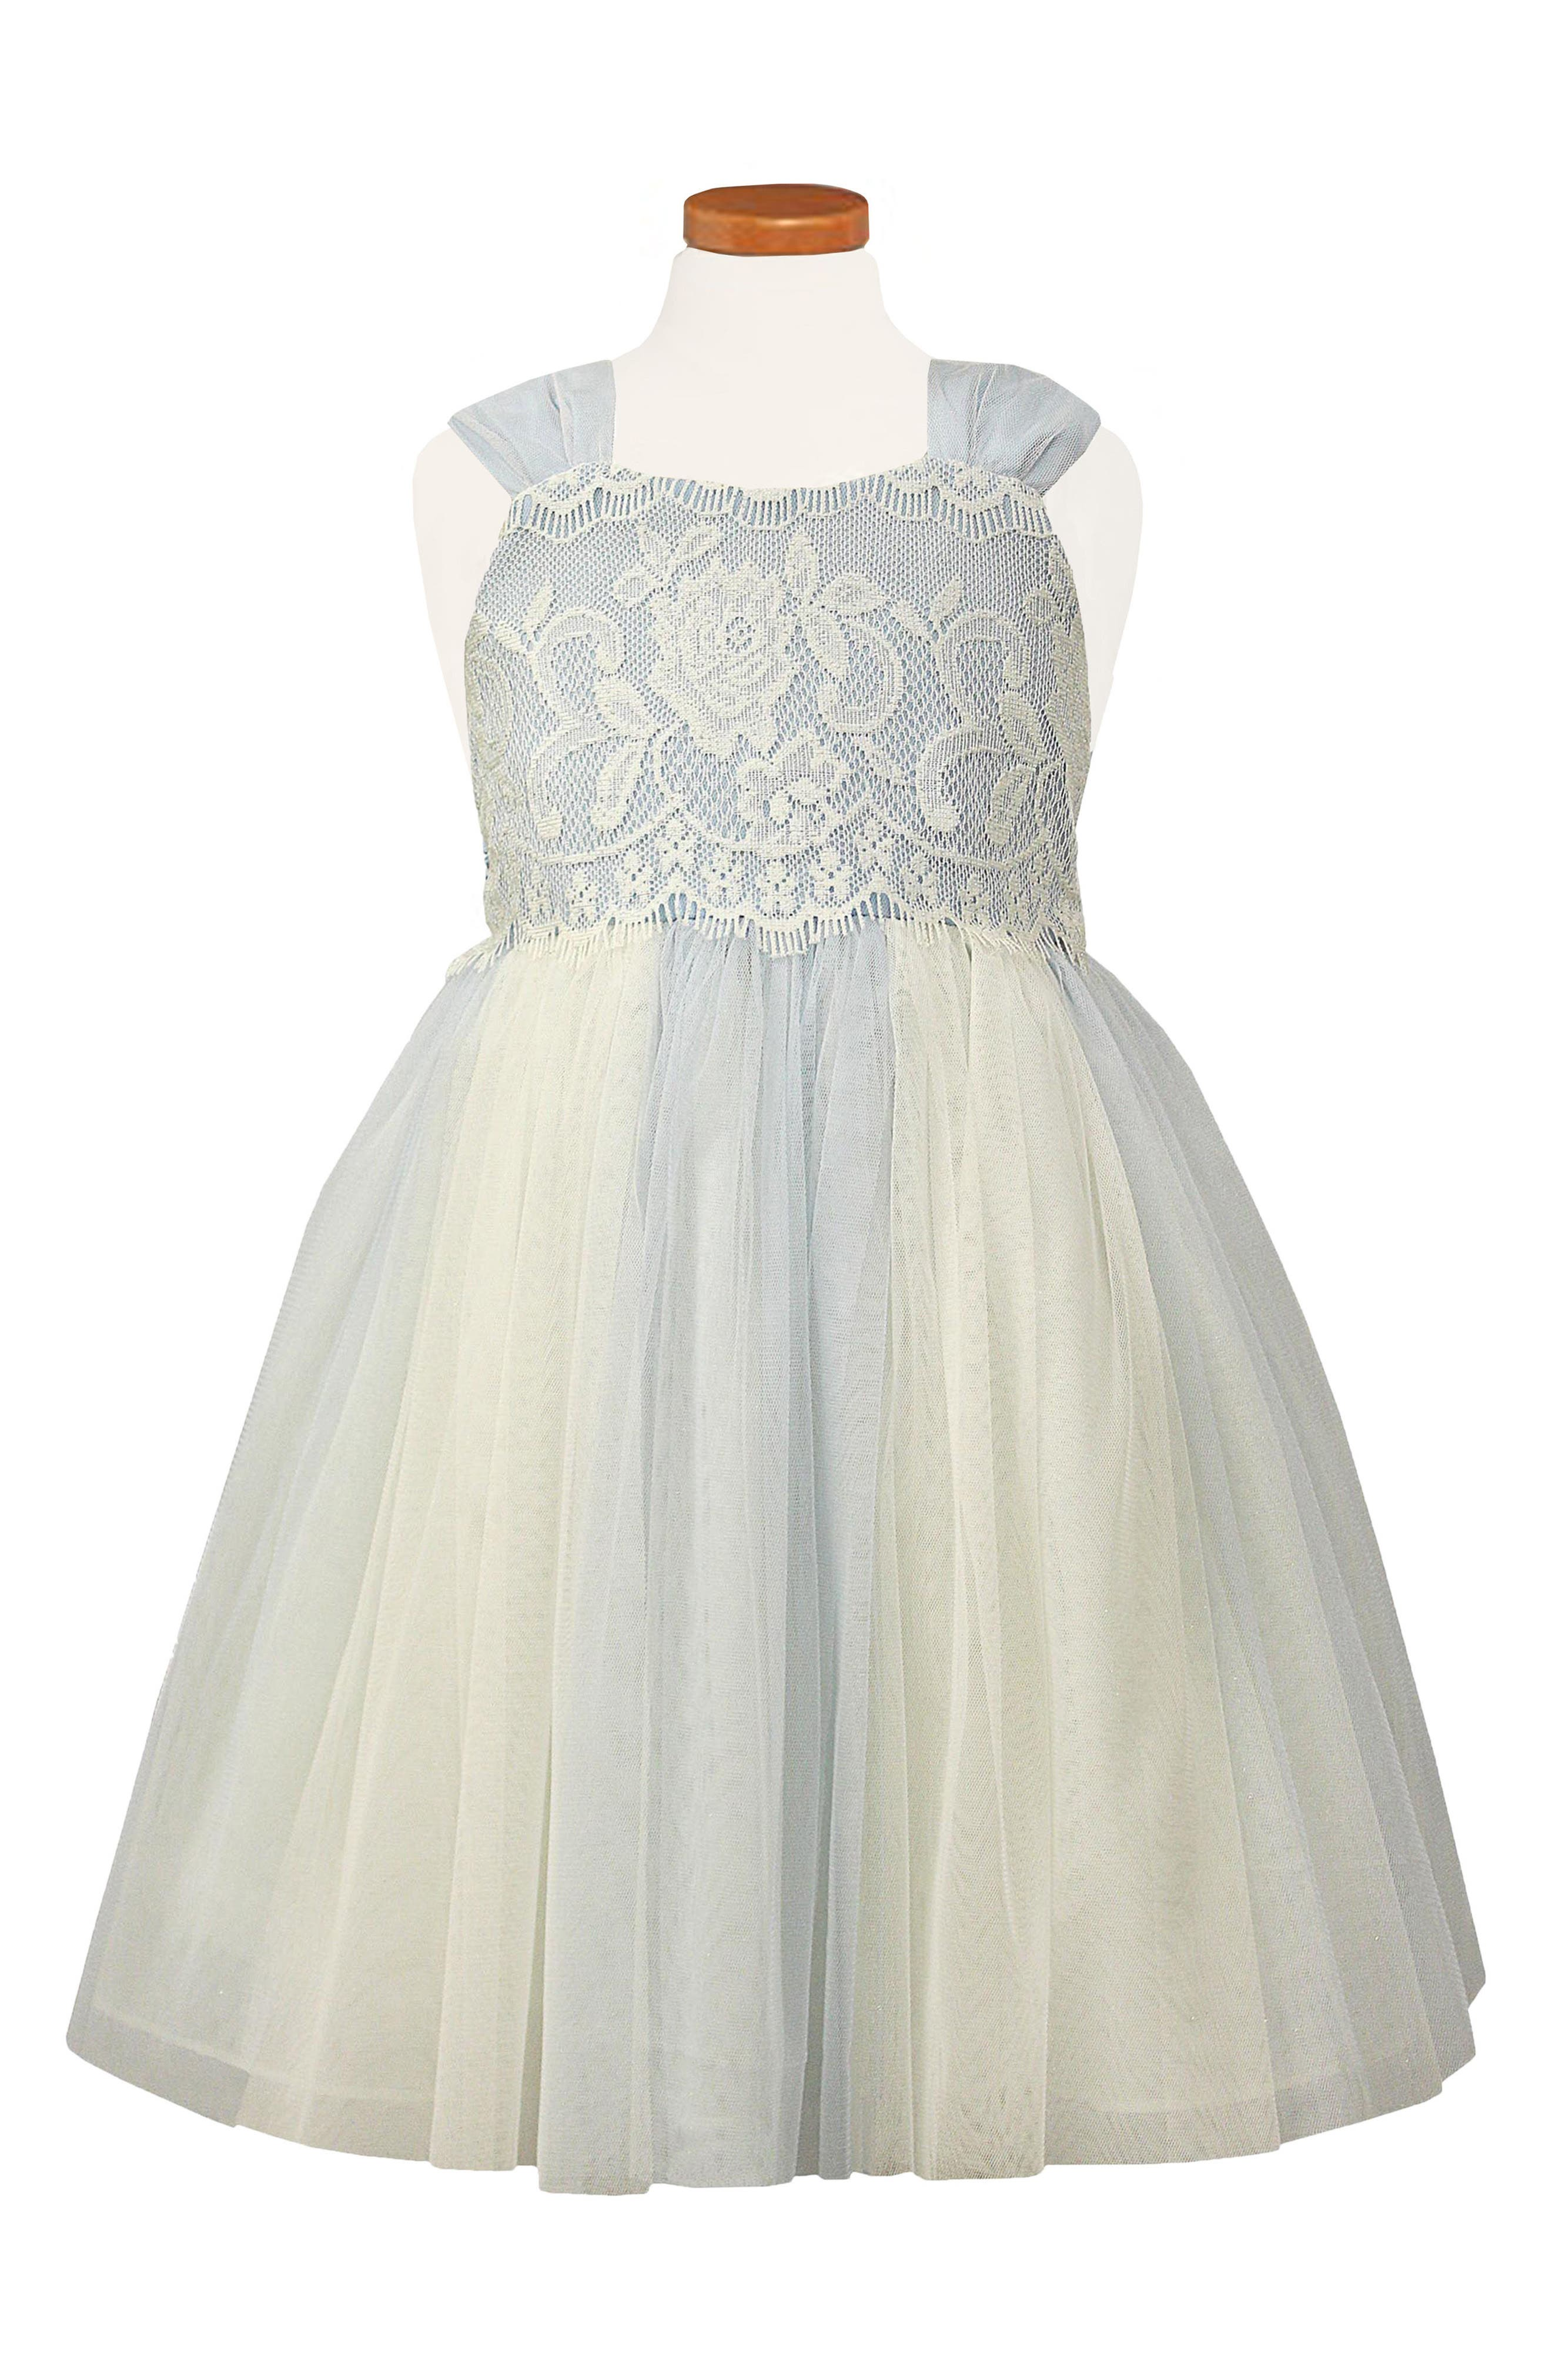 Lace & Tulle Fit & Flare Dress,                             Main thumbnail 1, color,                             Blue